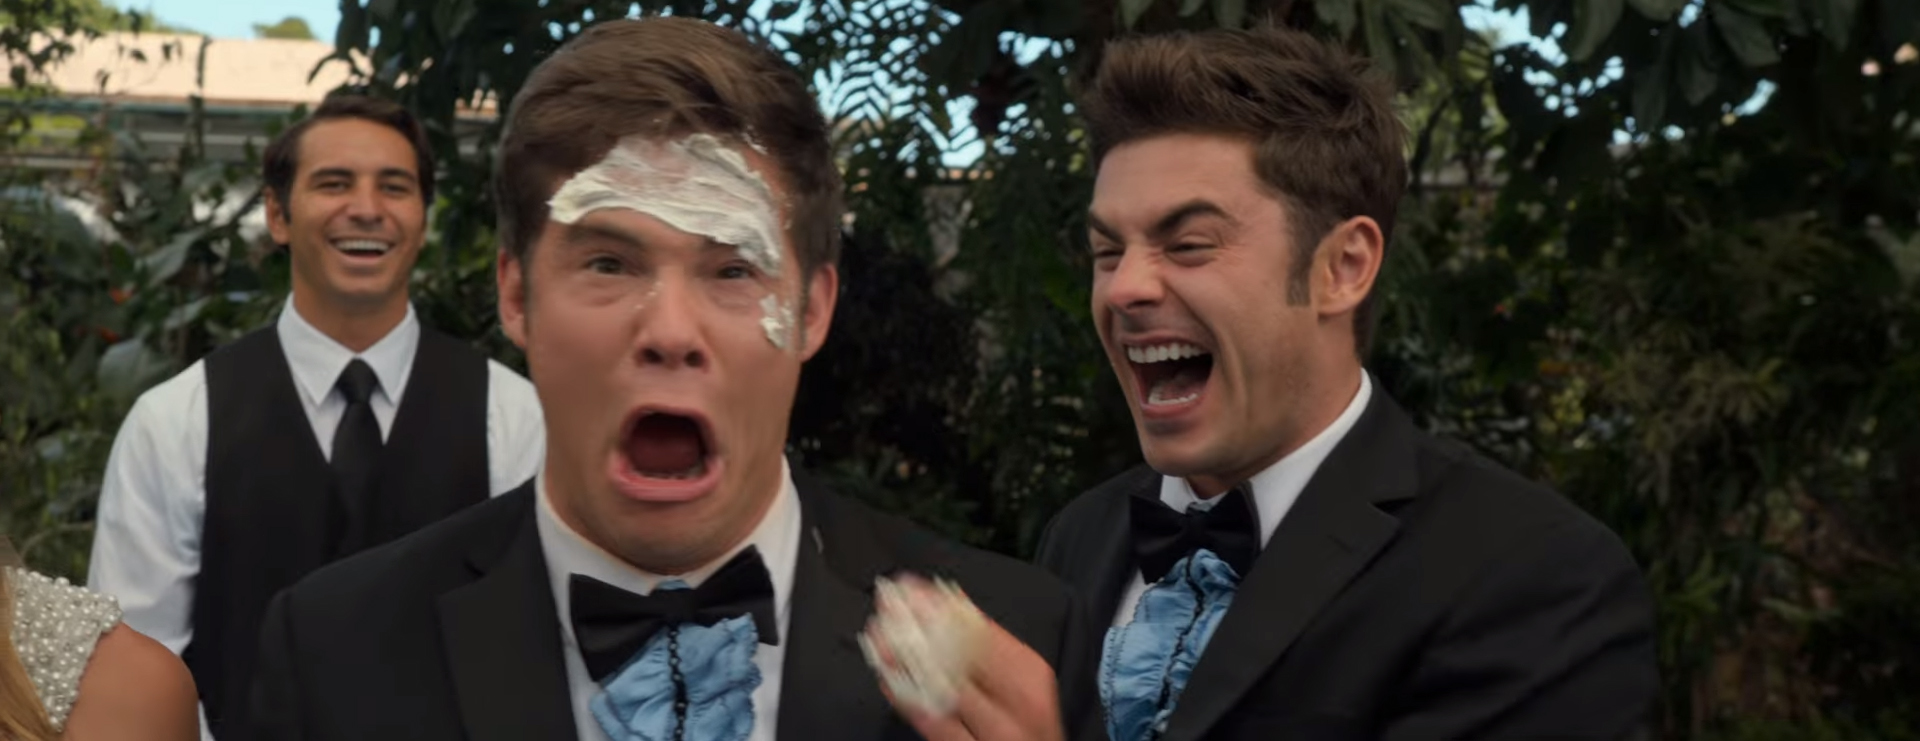 Mike and Dave Need Wedding Dates. Image Credit: 20th Century Fox.